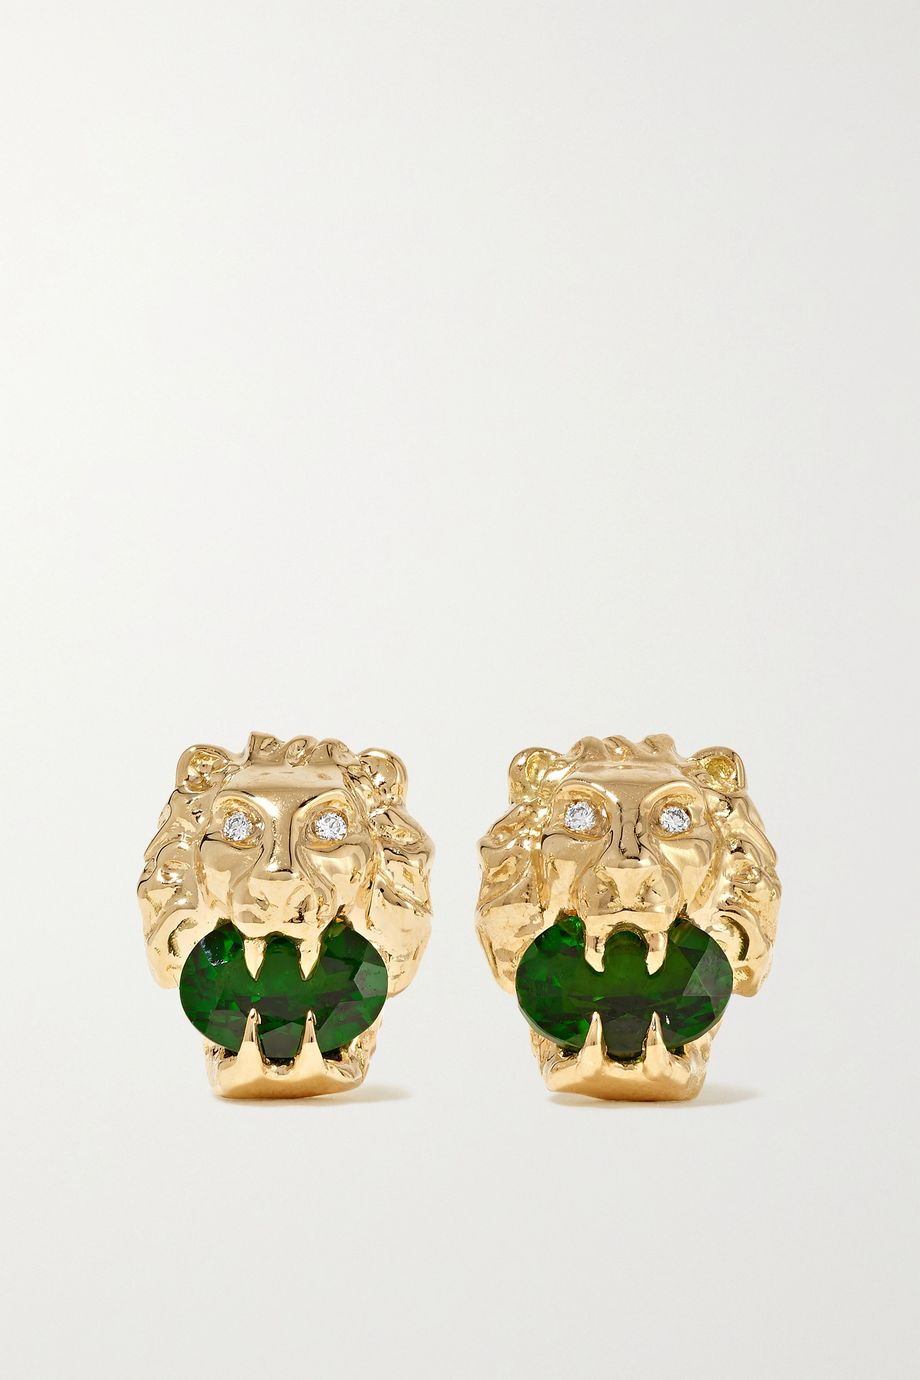 Gucci 18-karat gold, chrome diopside and diamond earrings